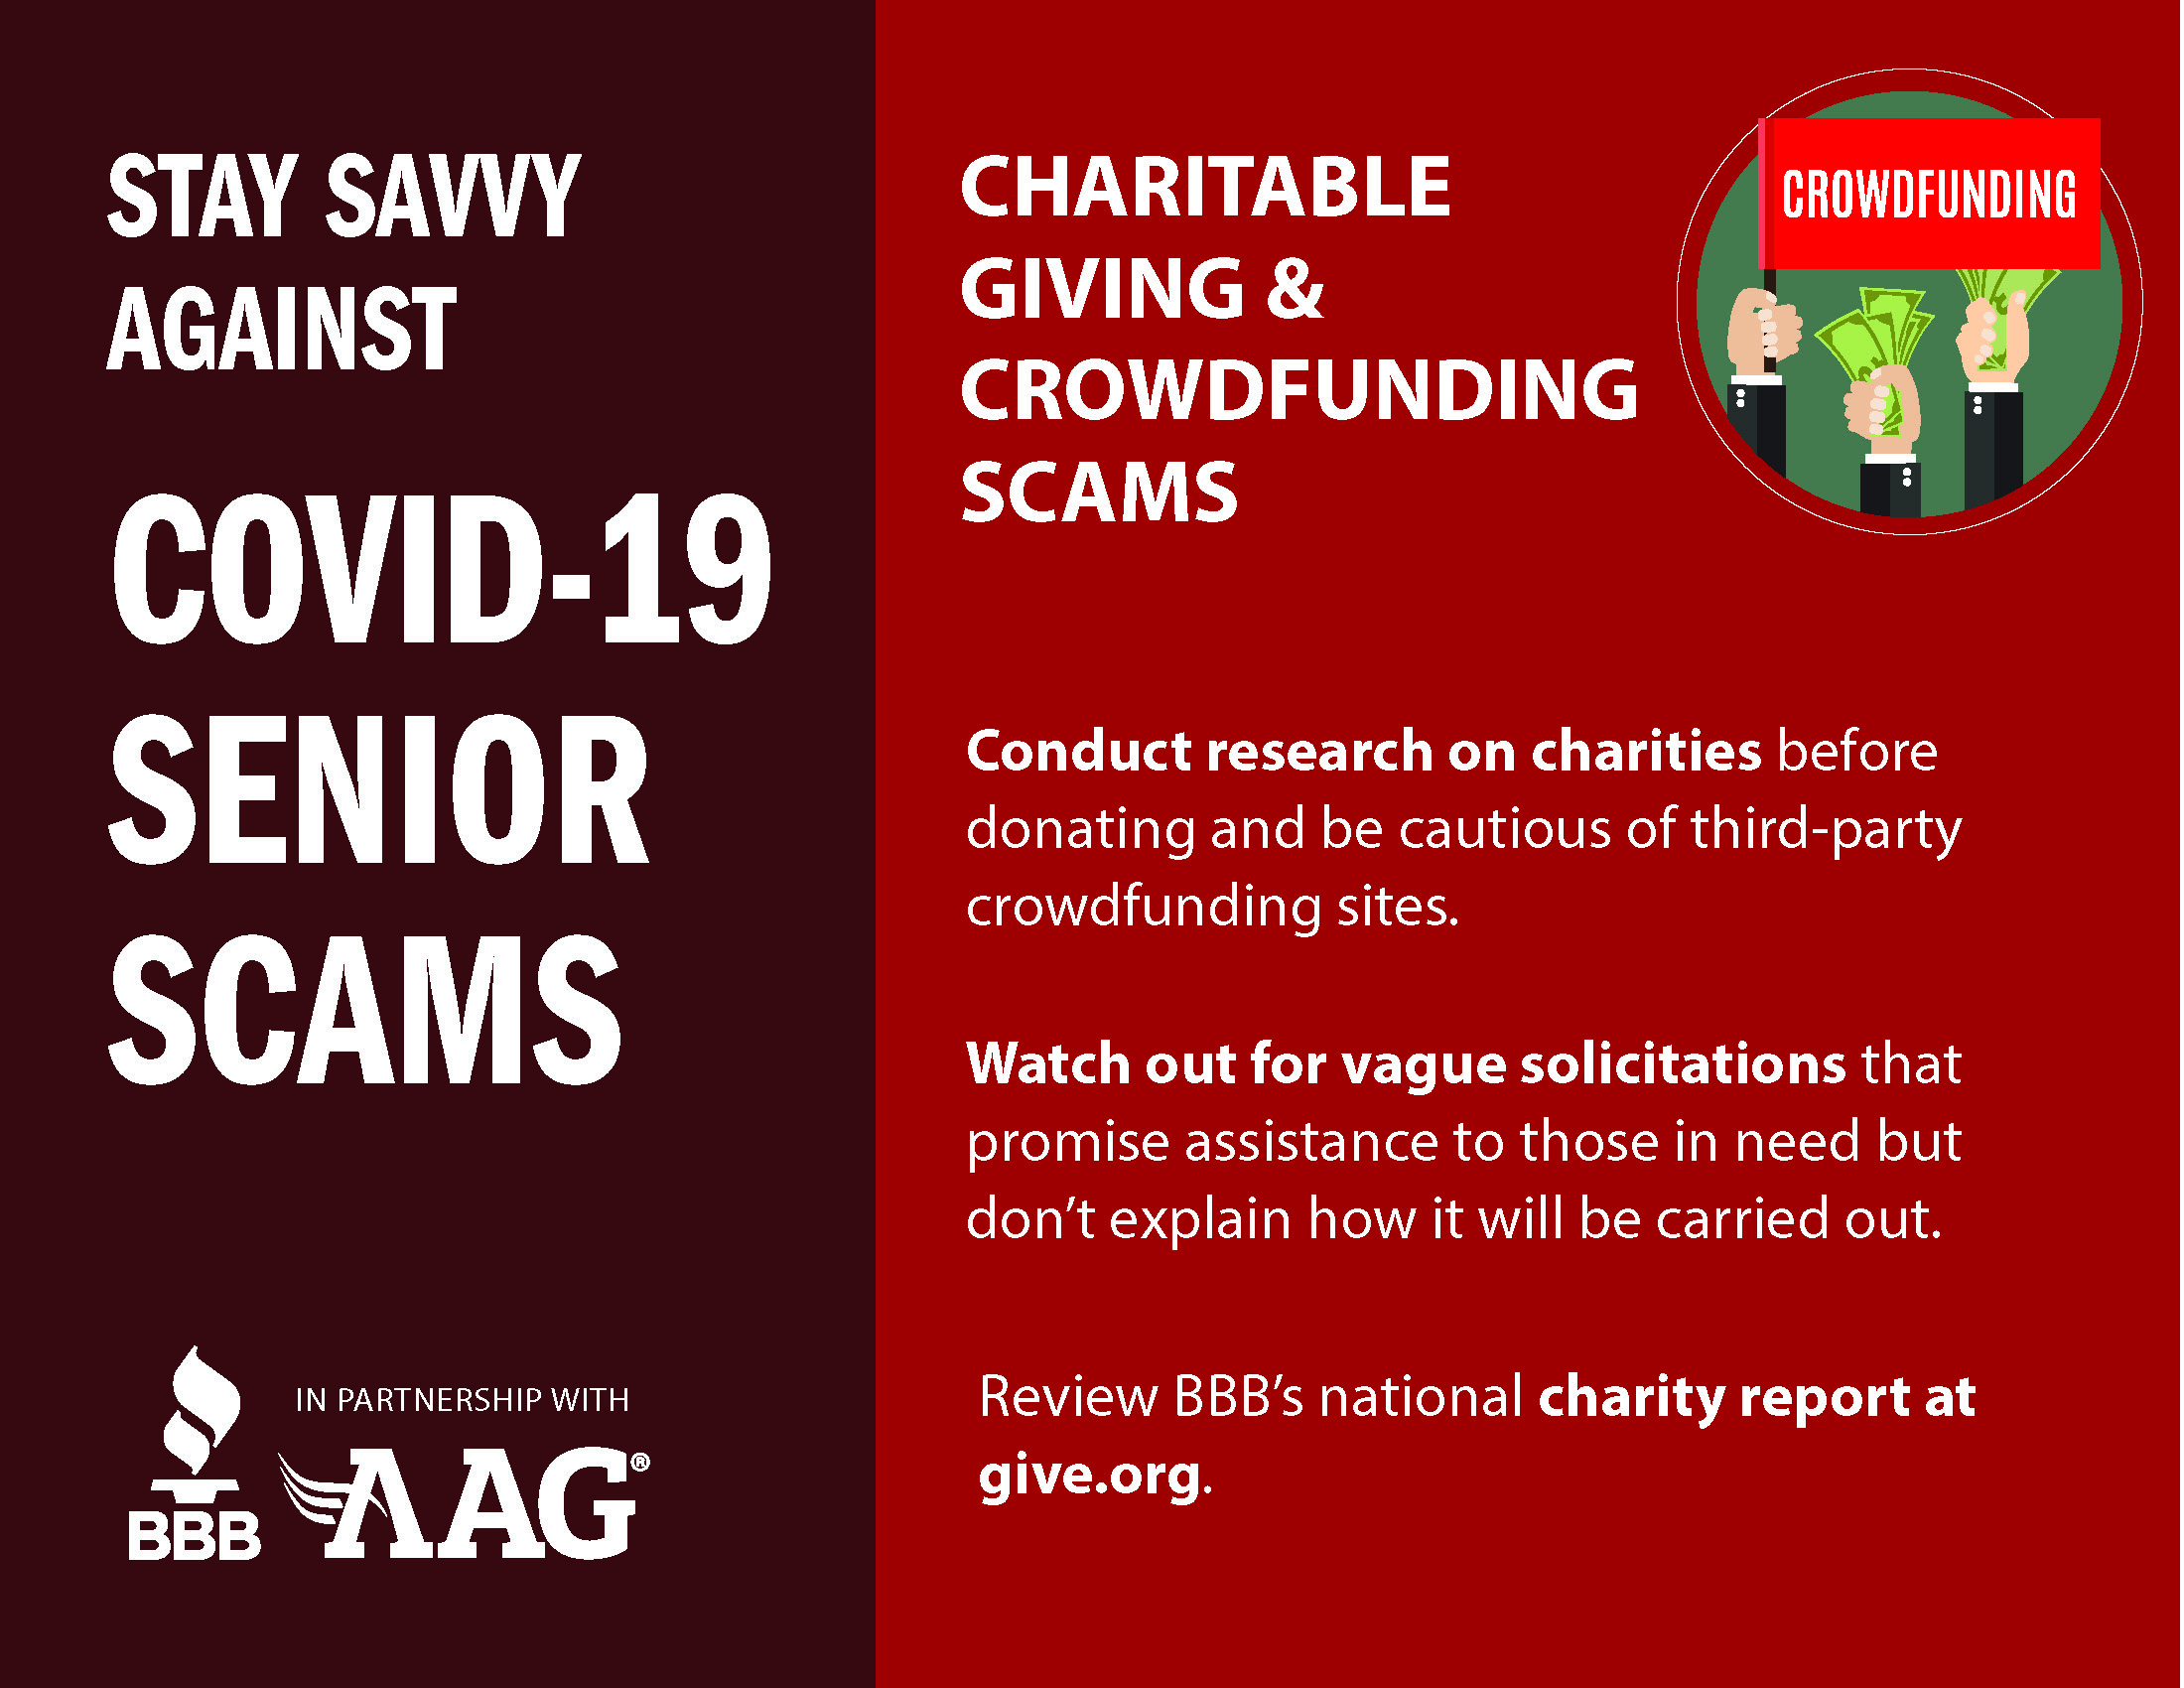 Charitable Giving & Crowdfunding Scams